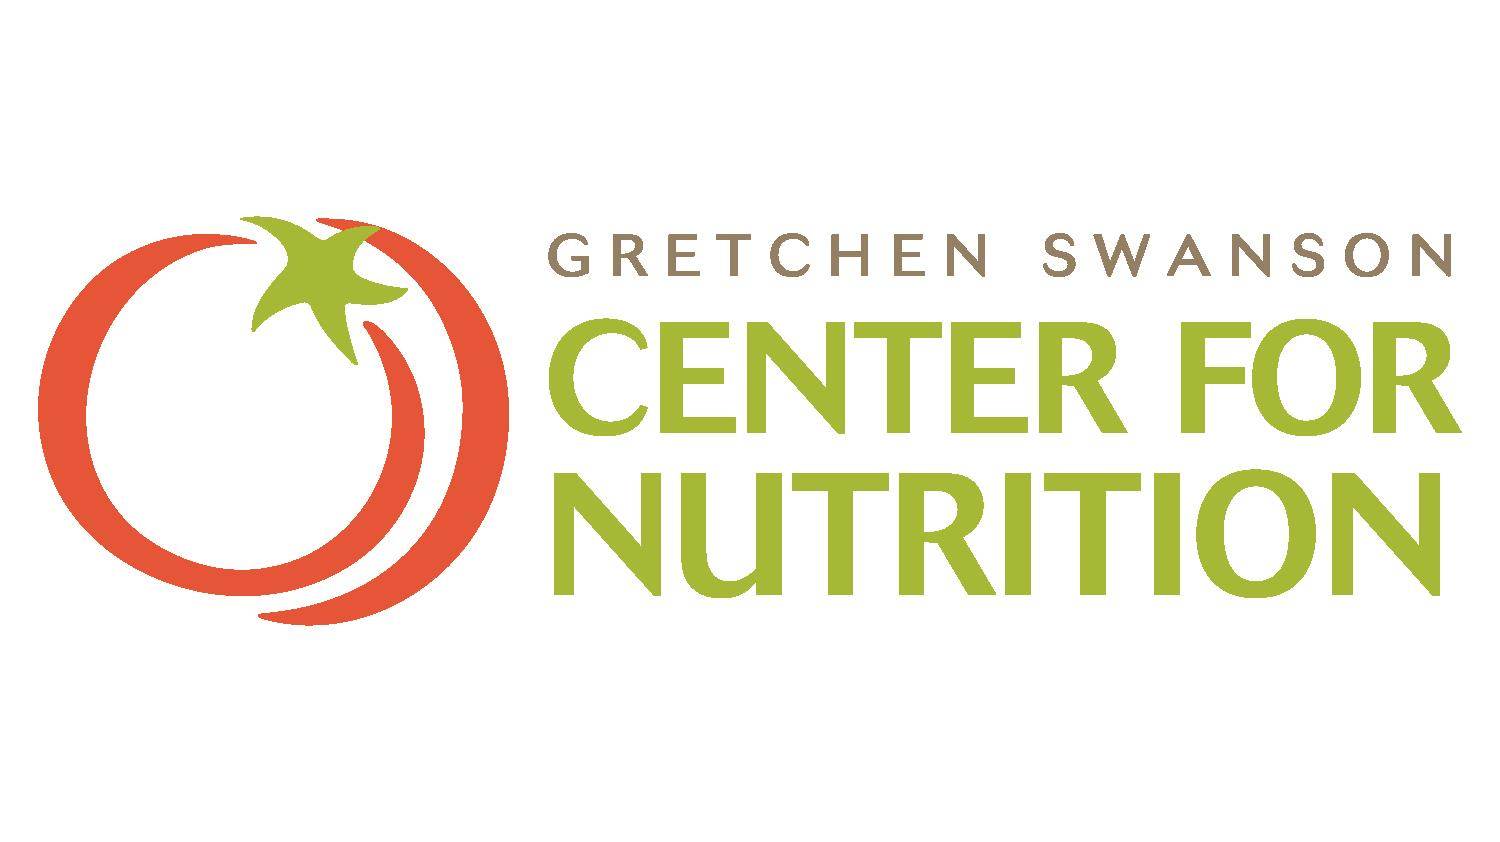 Report: National Nutrition Incentive Program Assists 190 Organizations in Improving Community Nutrition, Health Outcomes